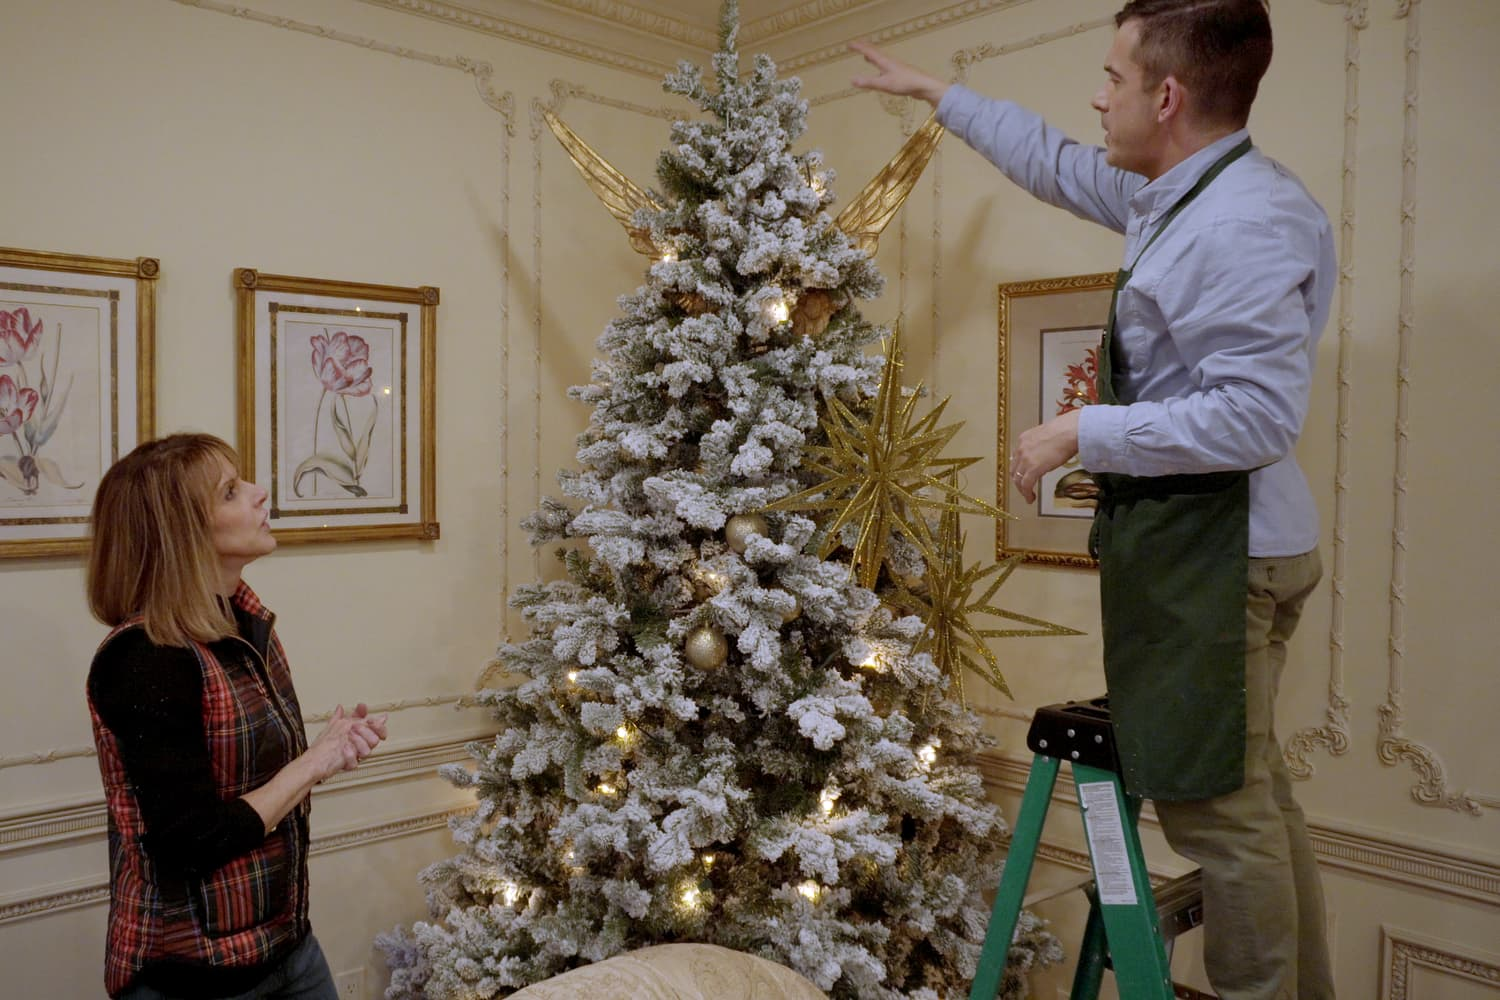 Mr. Christmas On the Best (Untraditional) Color For Your Tree, Plus 5 Other Holiday Decorating Ideas